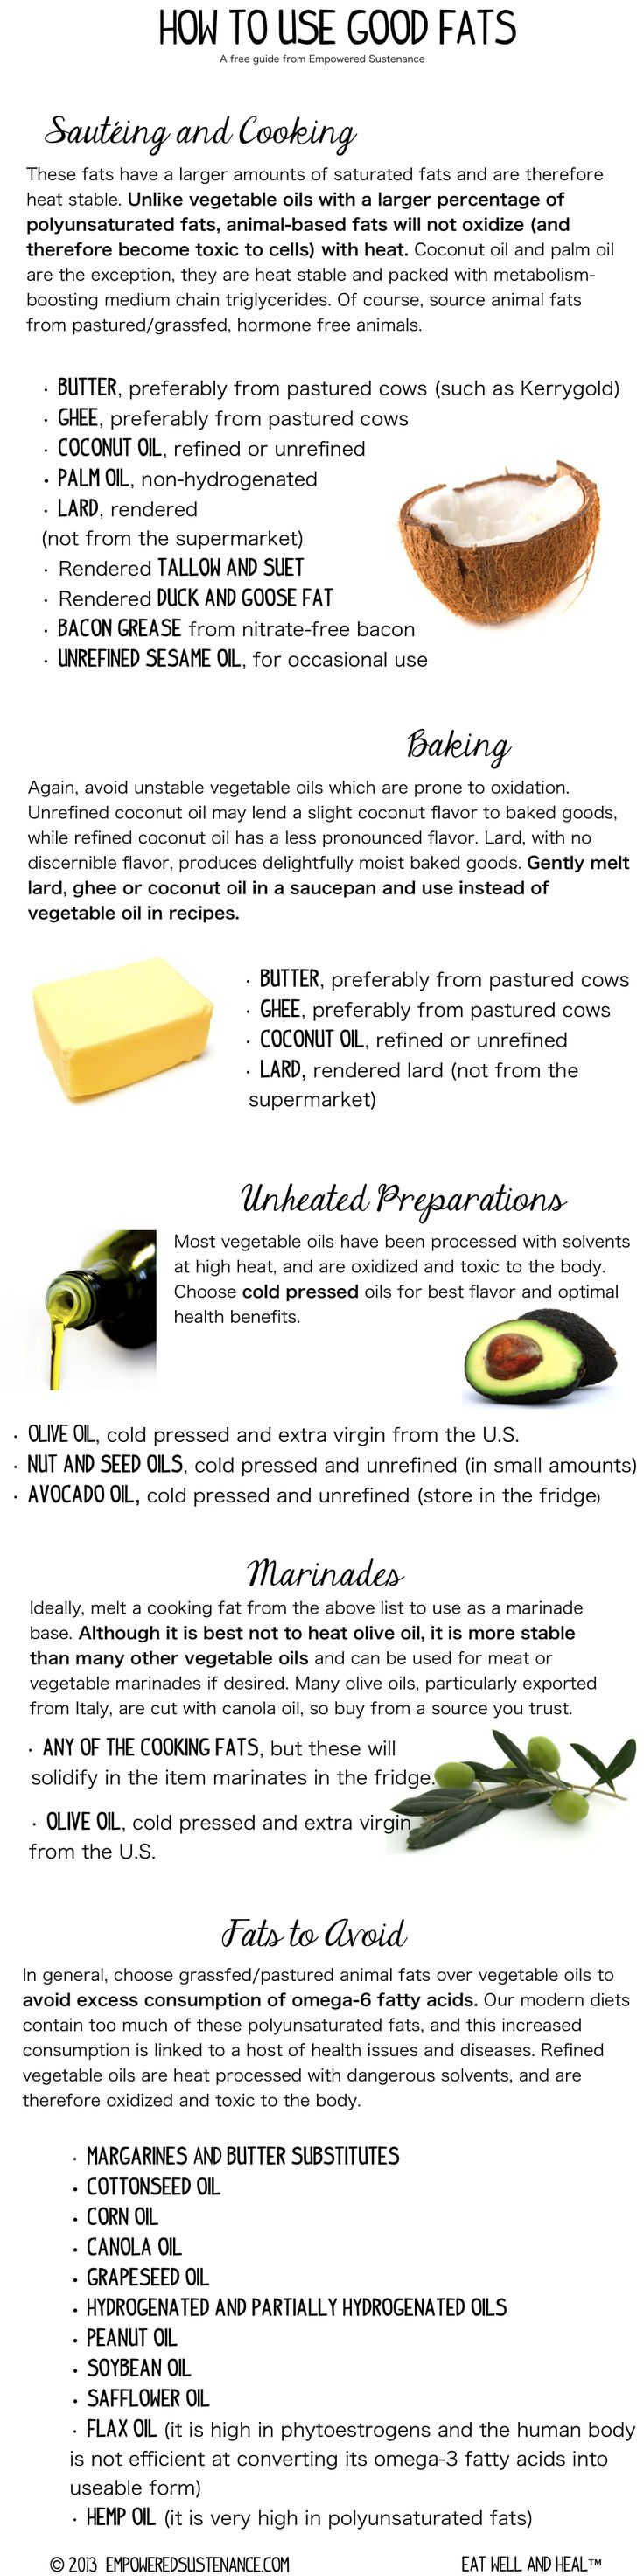 Good Fats & How to use them for cooking, baking and dressings